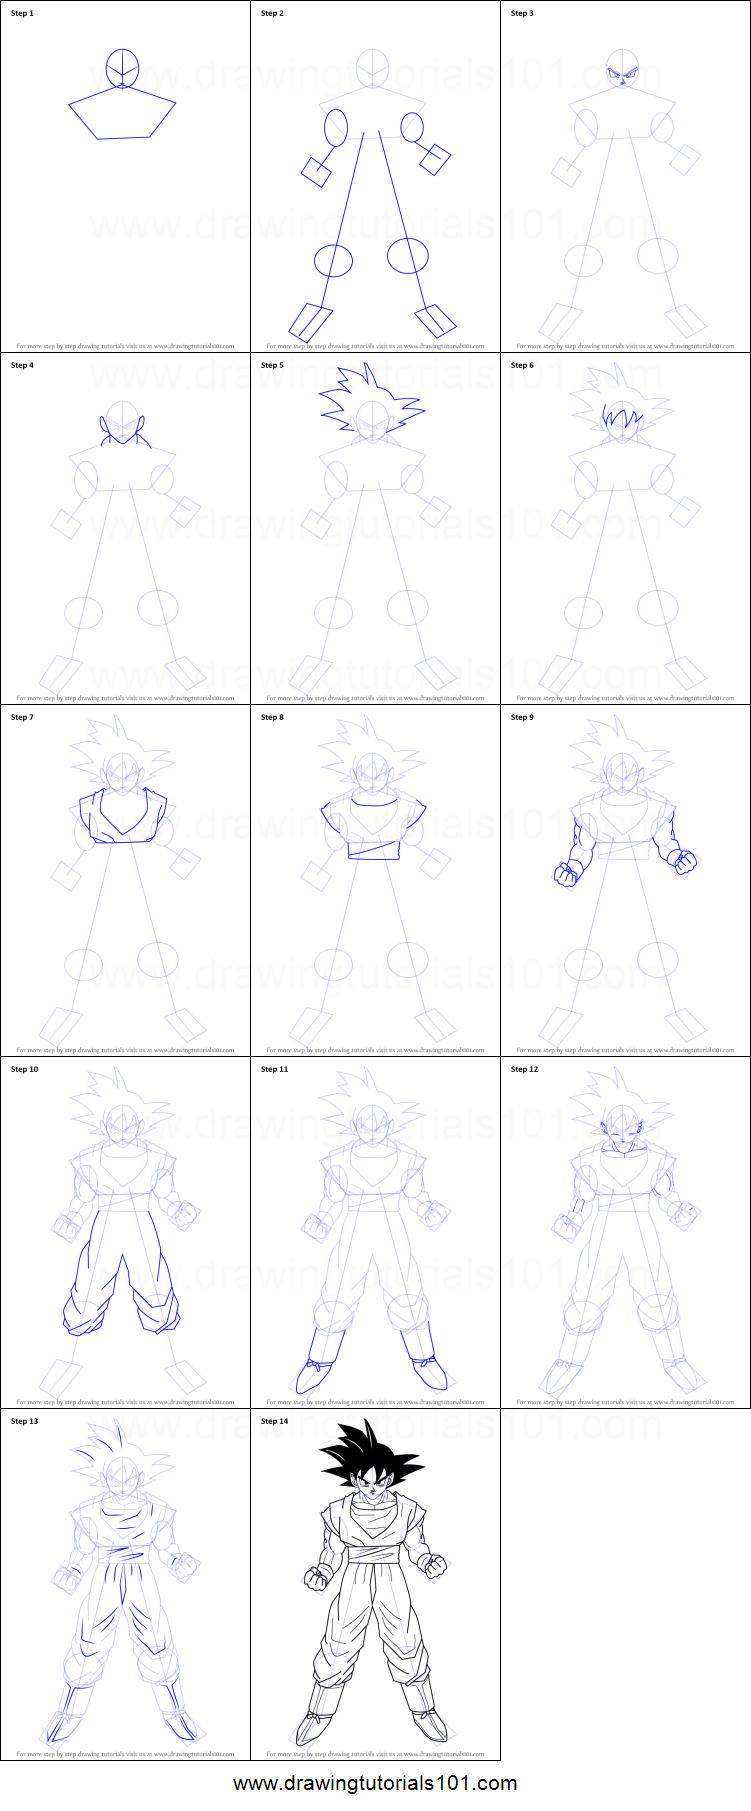 How To Draw Goku From Dragon Ball Z Printable Step By Step Drawing Sheet Drawingtutorials101 Com Goku Drawing Dragon Ball Dragon Ball Wallpapers